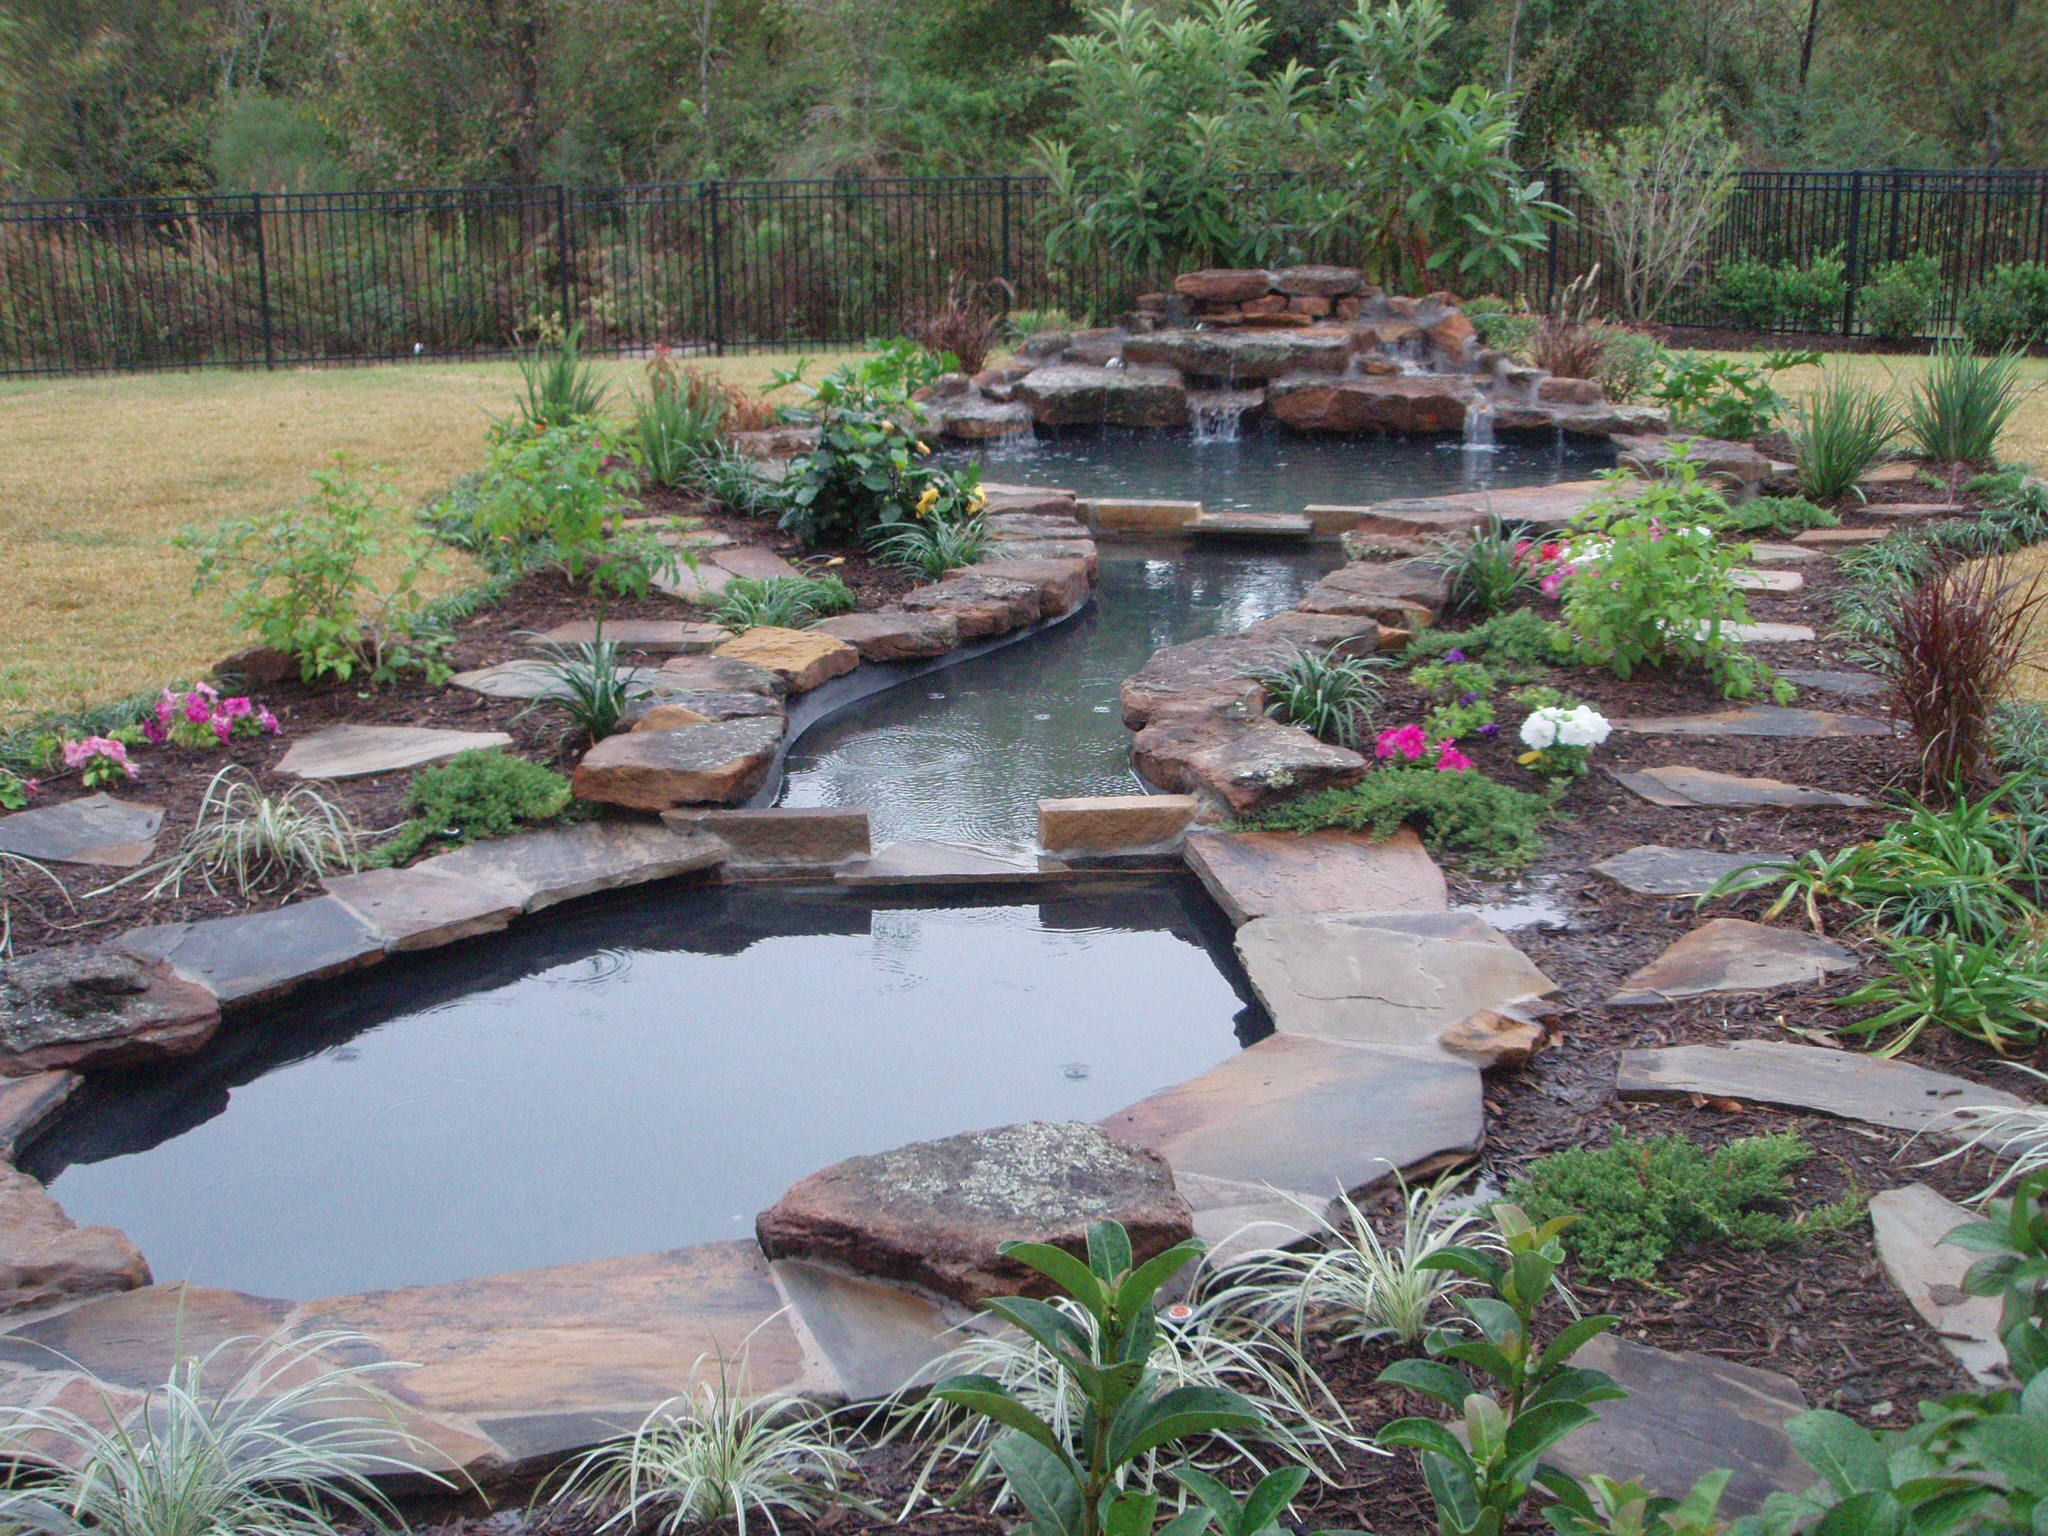 Small Backyard Pond Designs koi pond designs ideas pond builders pond construction pond ideas backyard ponds koi pond design design Natural Pond Landscaping Home Garden Ideas Large Garden Pond With Waterfall Ideas Design